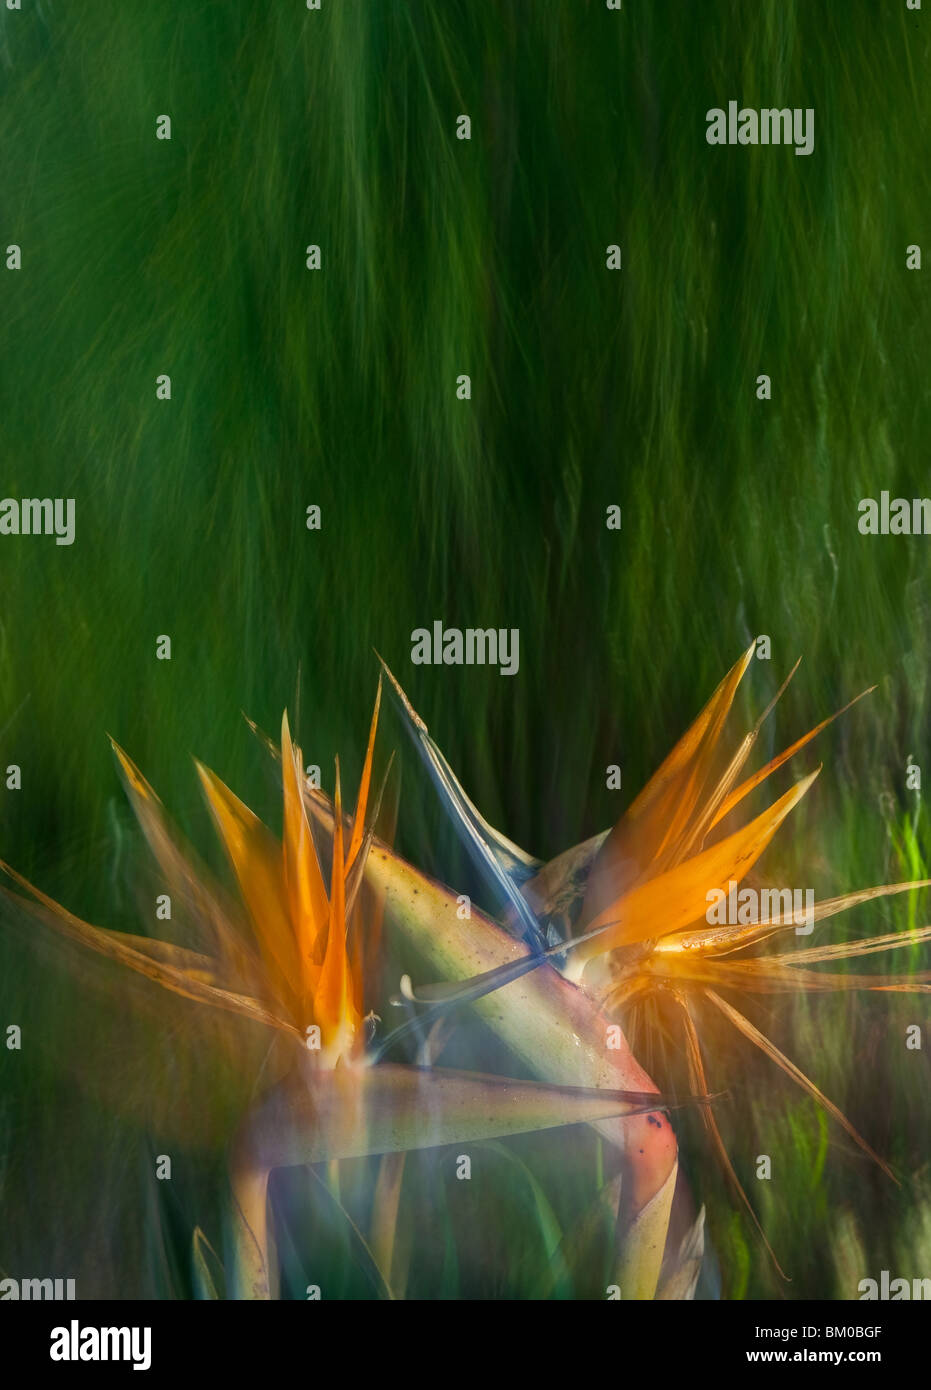 Abstract South African flowers in the UCSC Arboretum in Santa Cruz, California, USA. - Stock Image